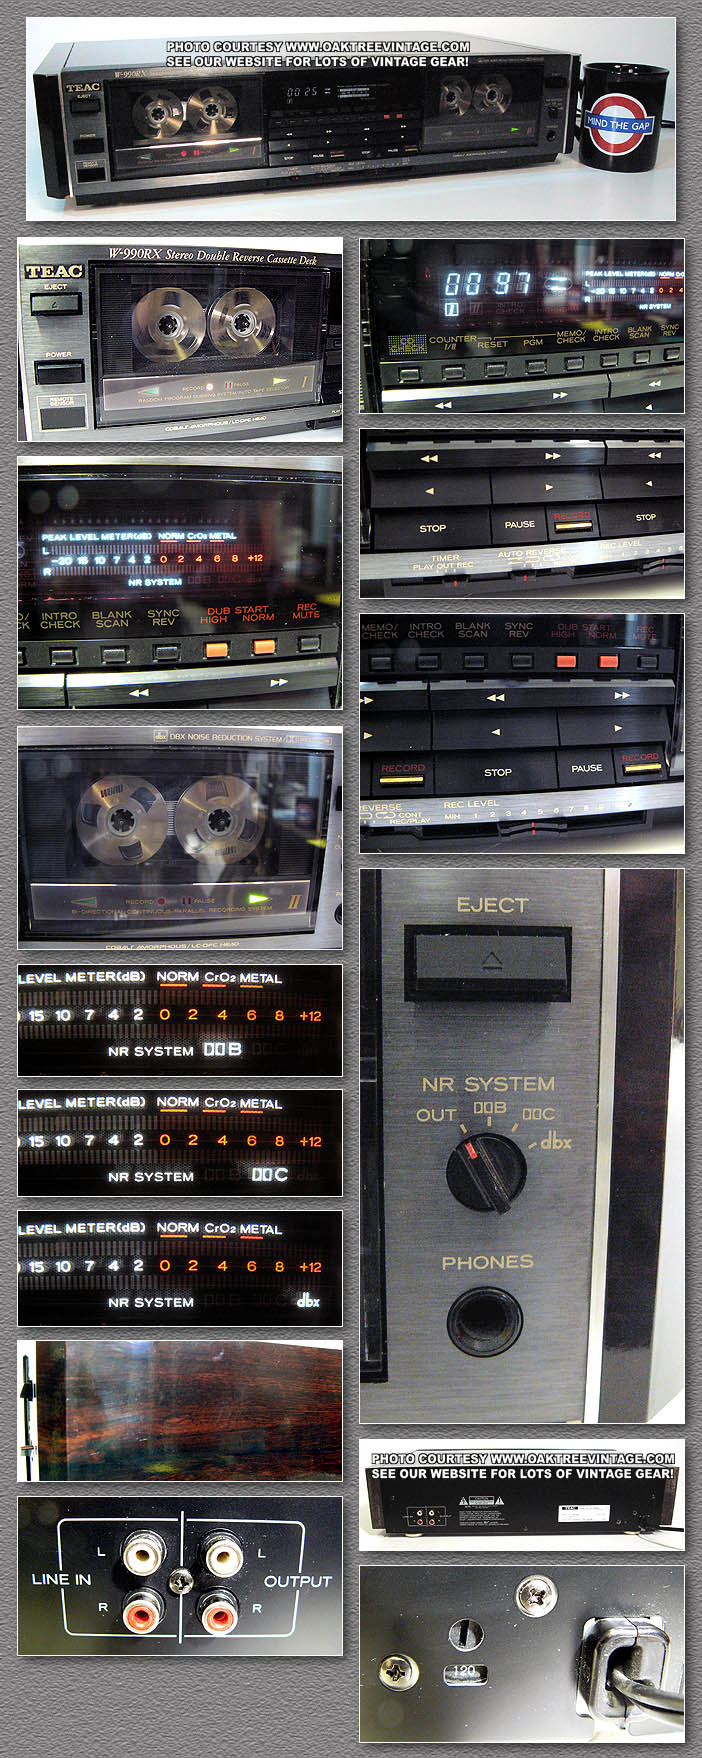 Vintage Teac Stereo Parts